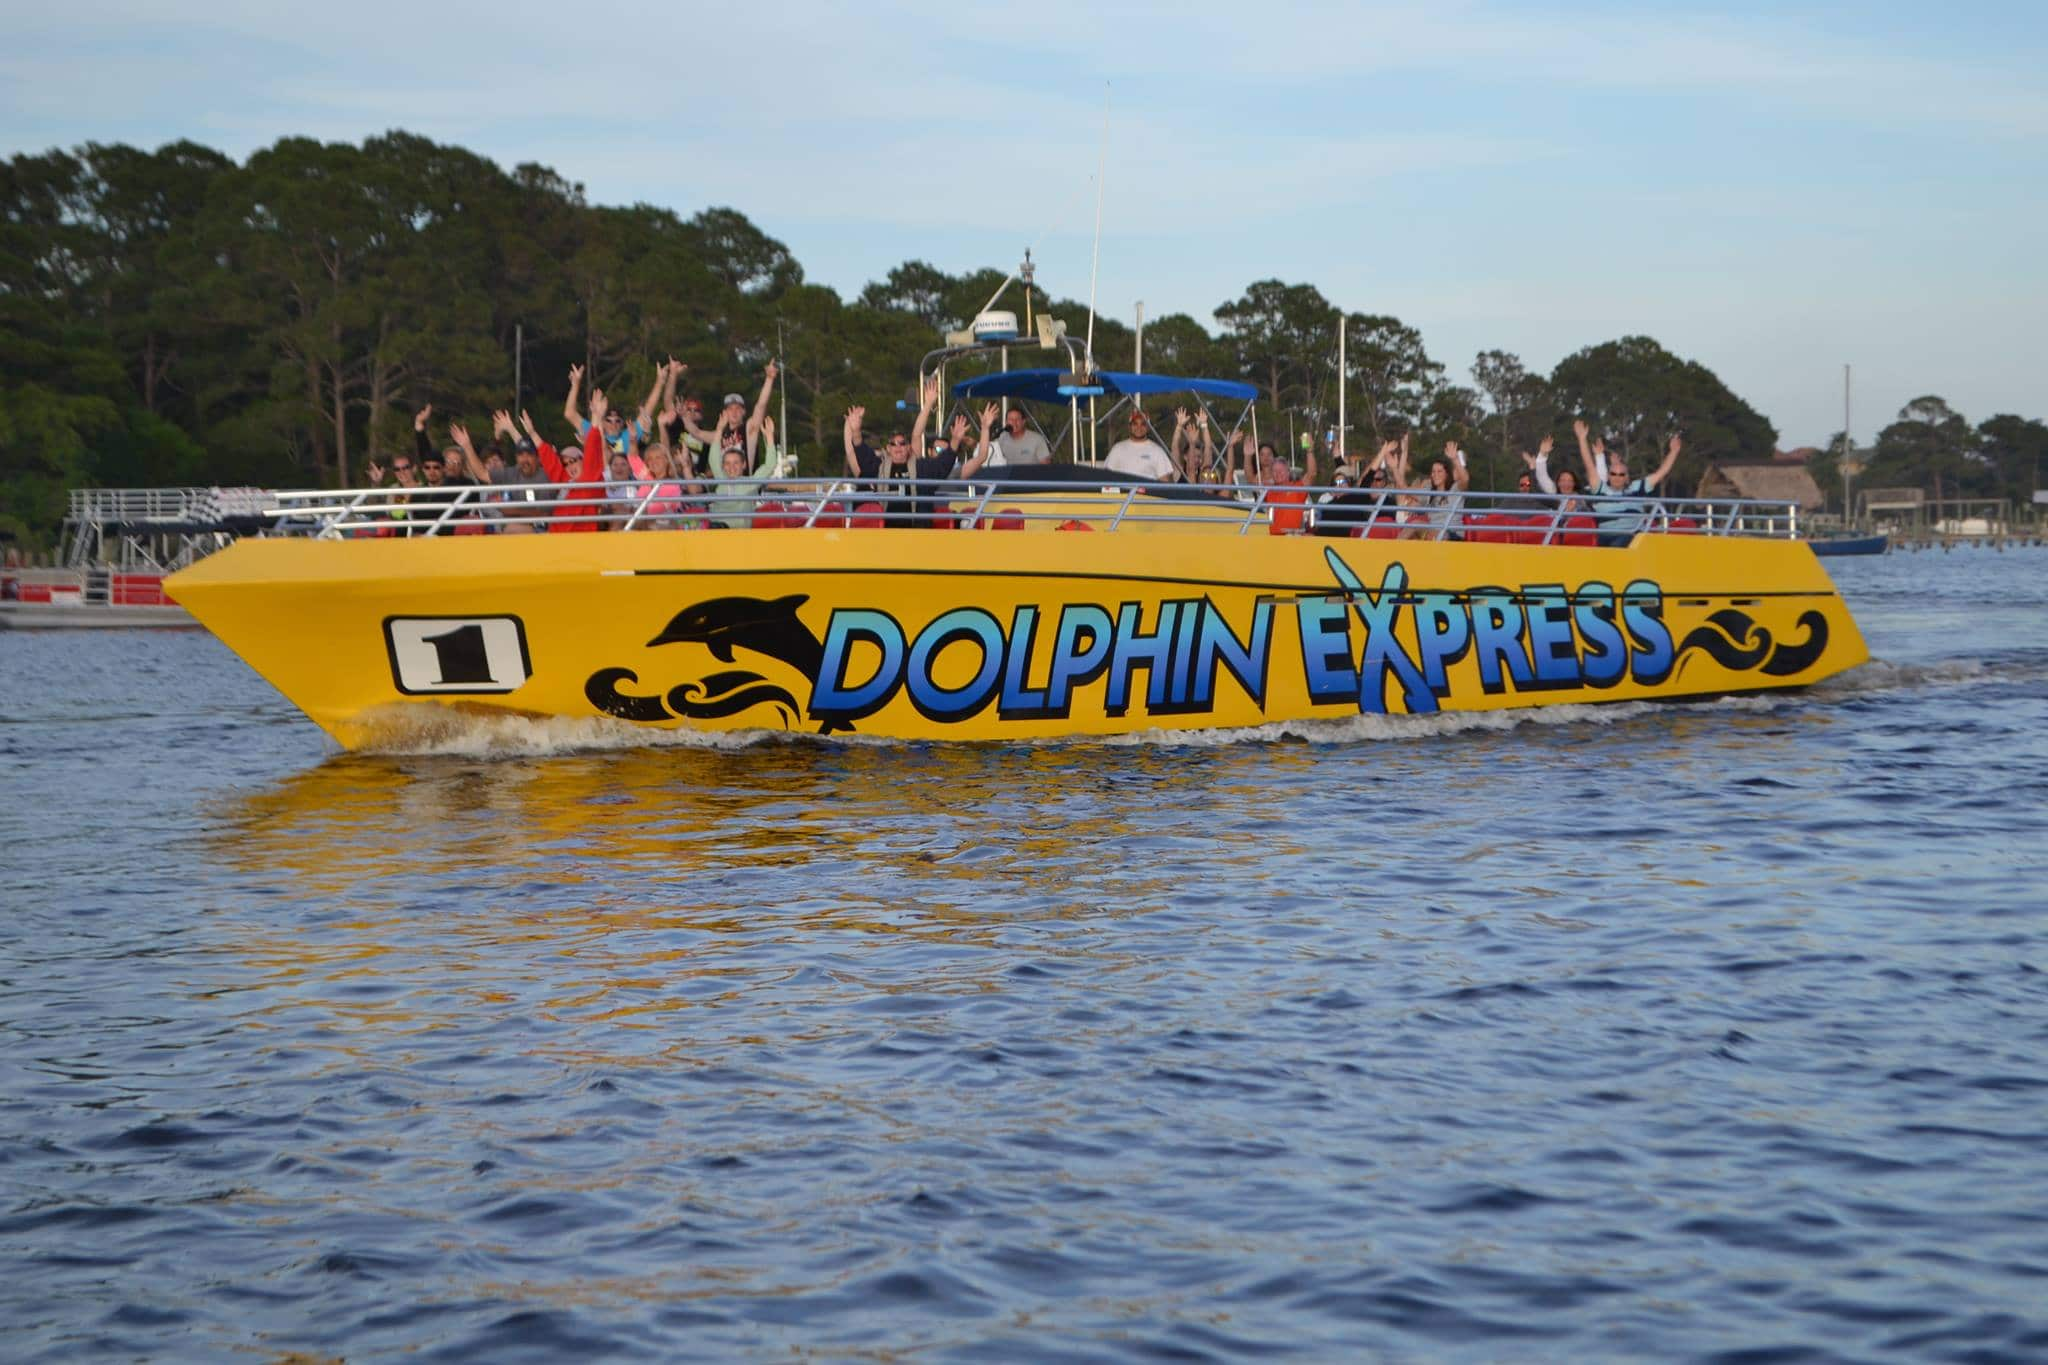 dolphin express Panama City beach fl